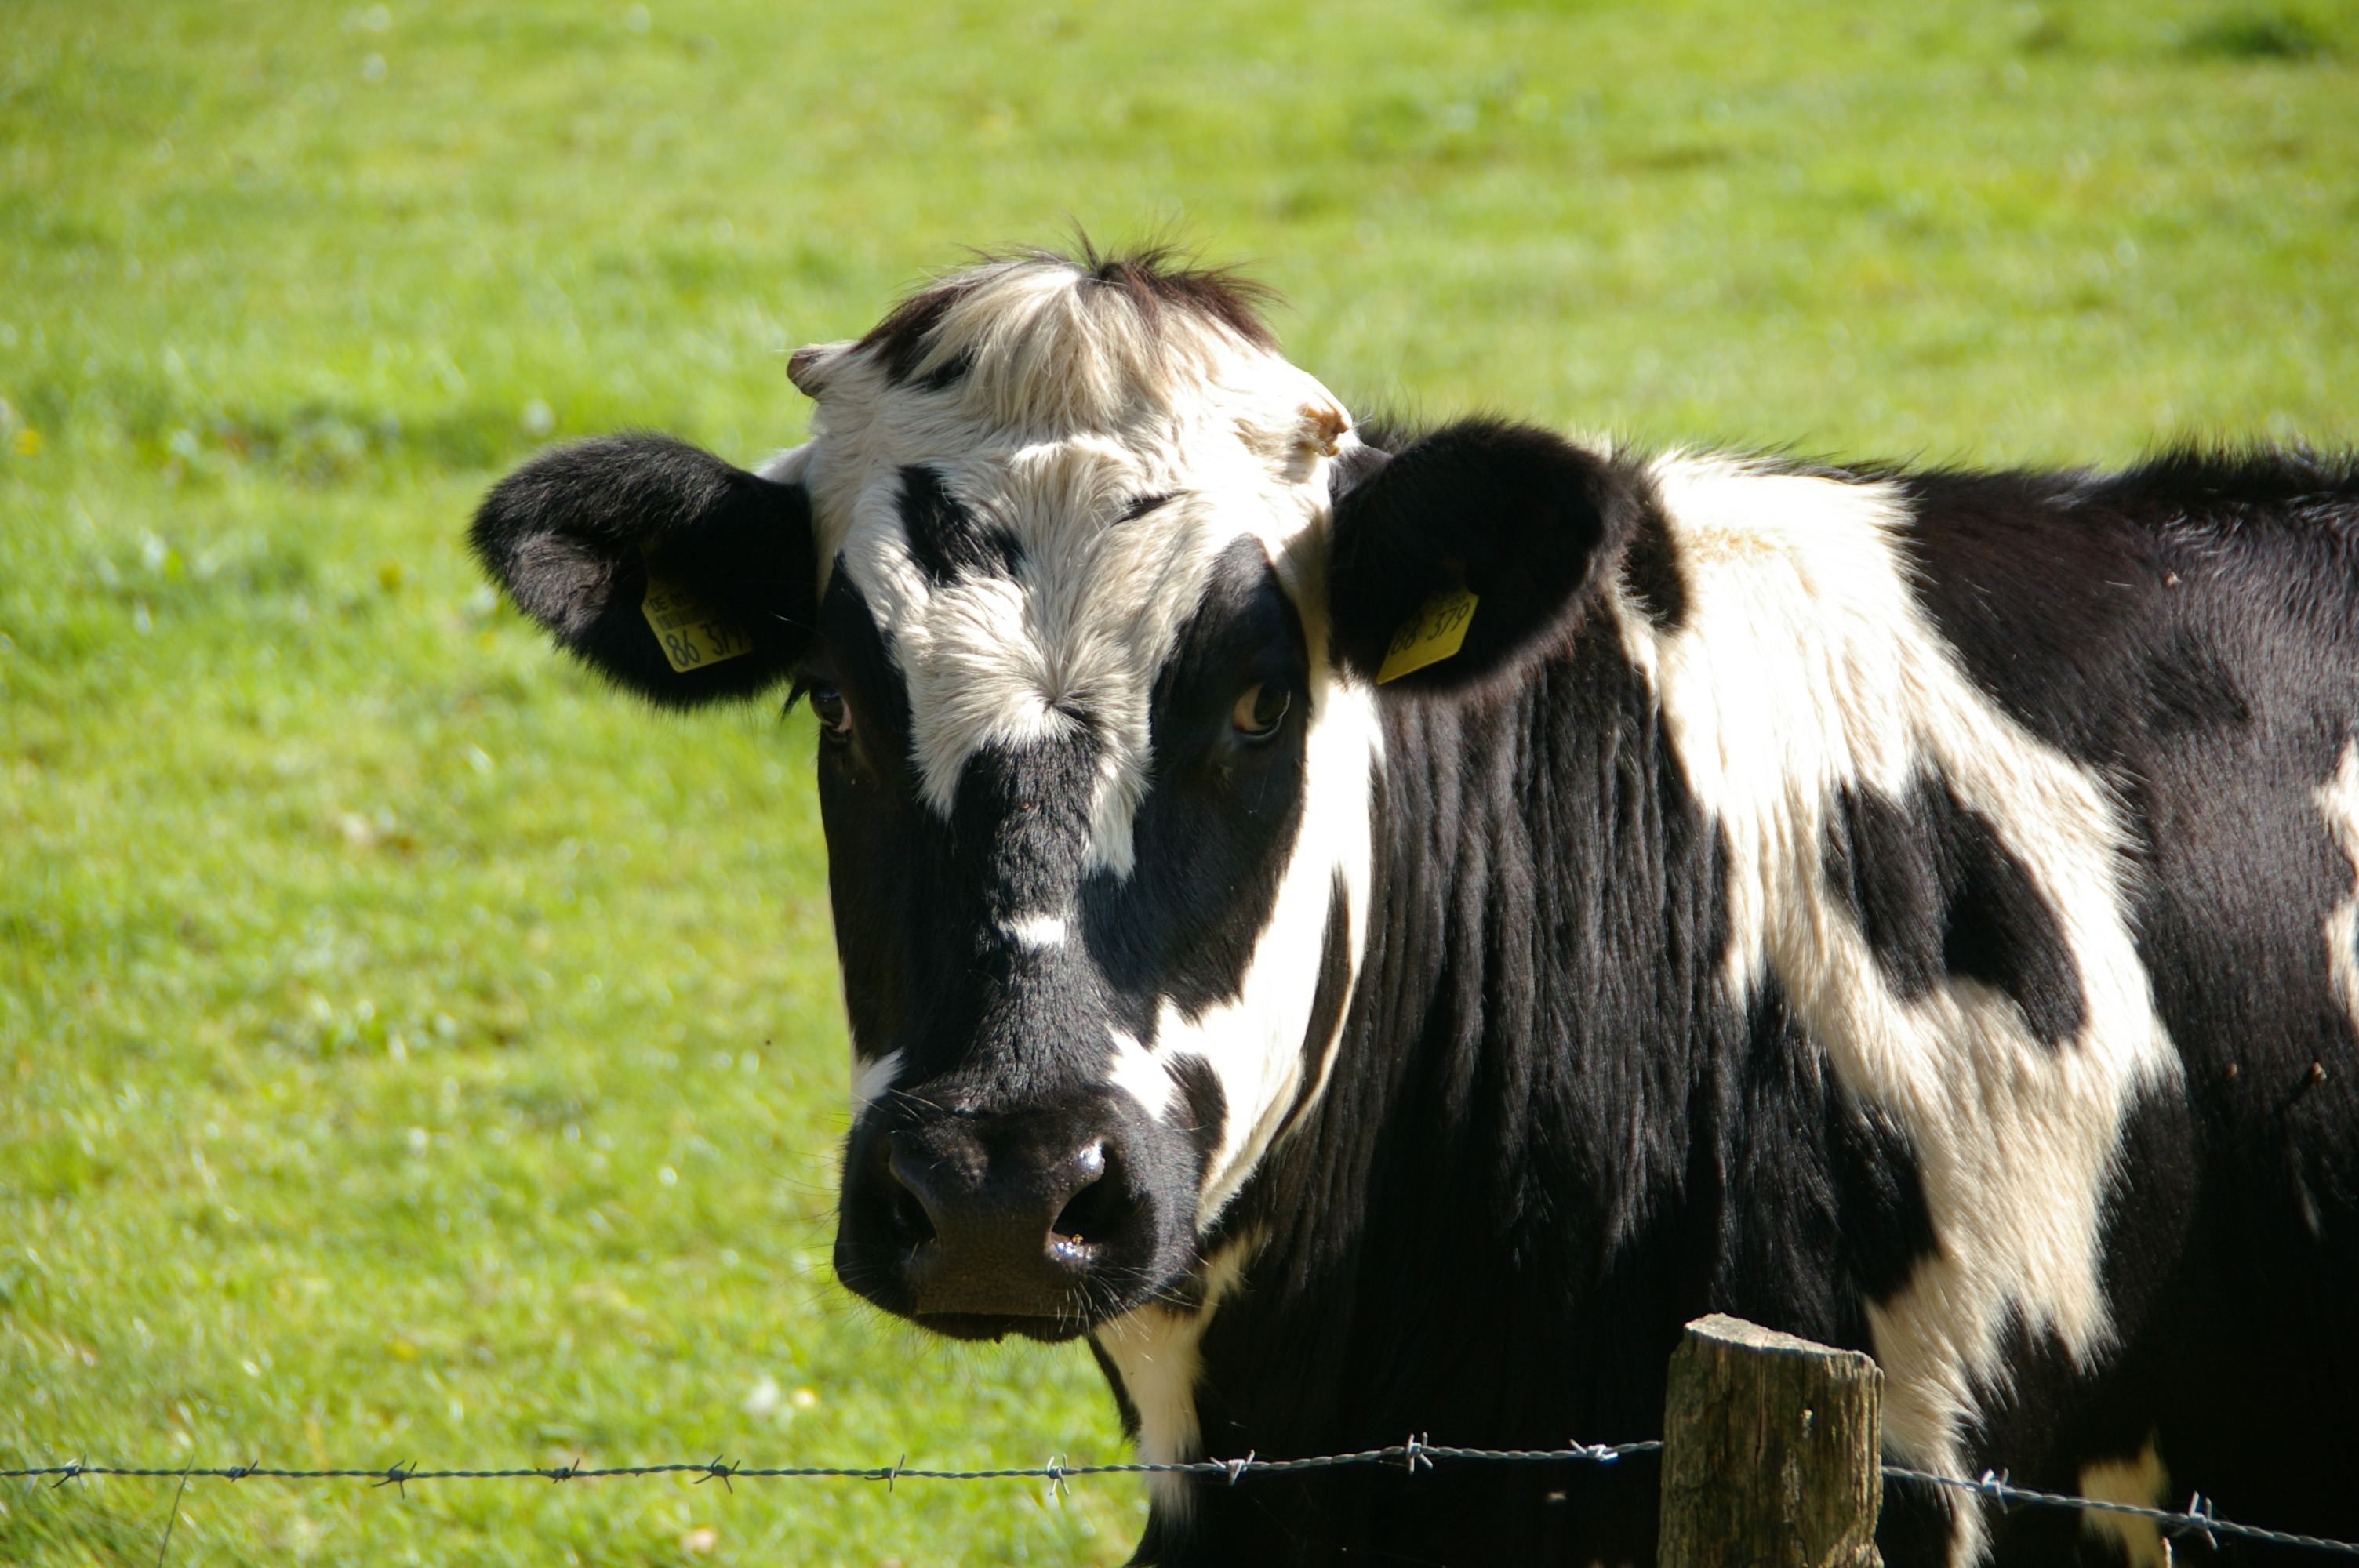 Cow Pictures Pexels Free Stock Photos